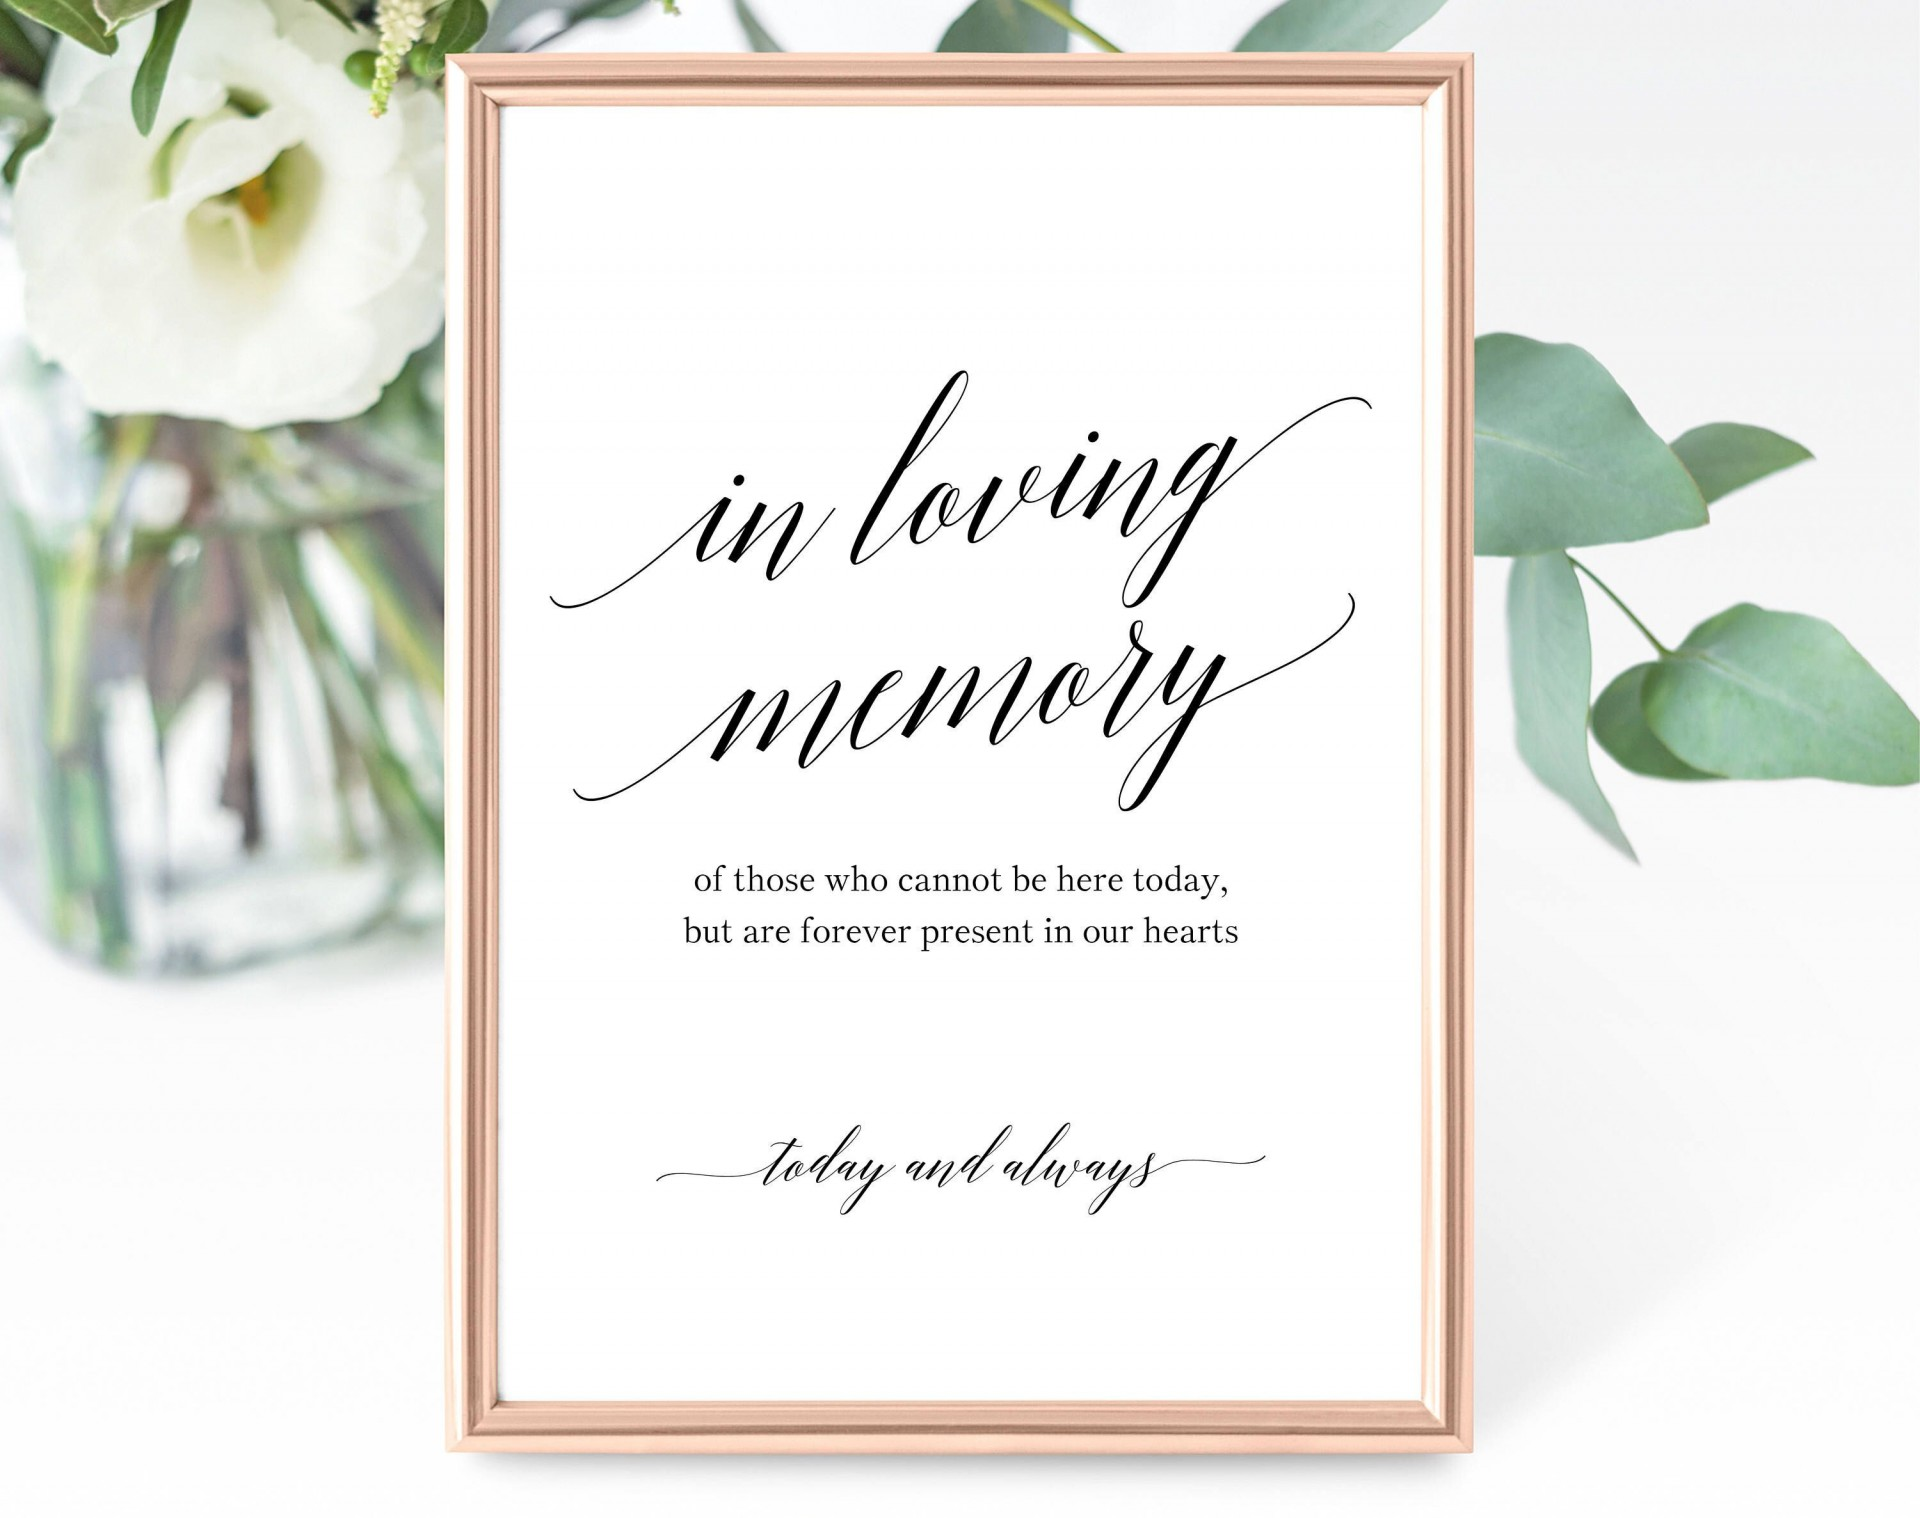 001 Shocking In Loving Memory Template Inspiration  Templates Word1920